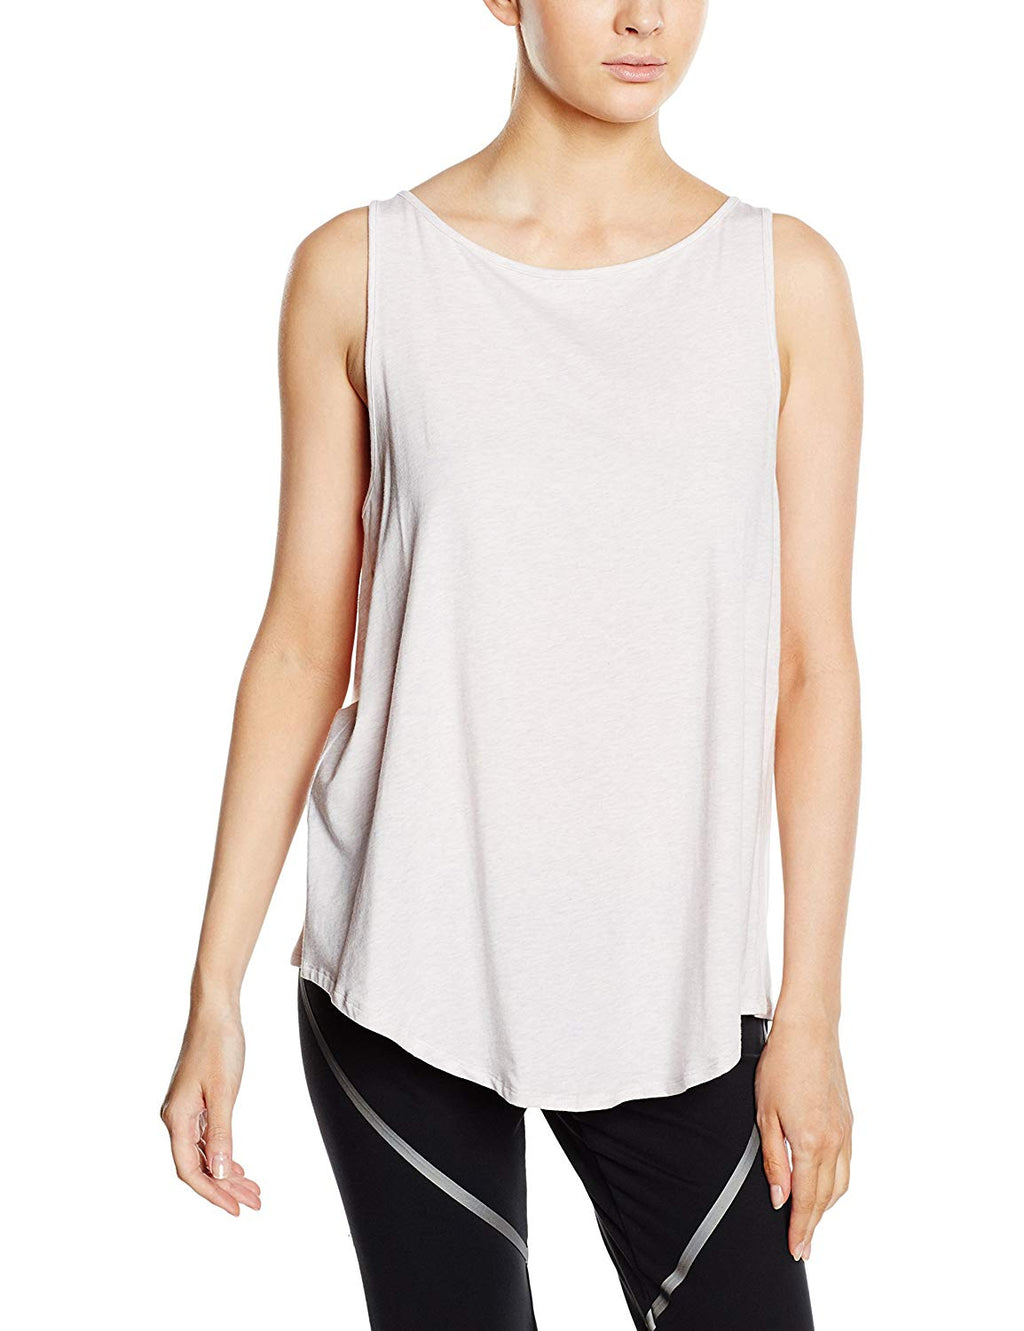 Under Armour Ladies Fitness Tank Top, and Take A Chance